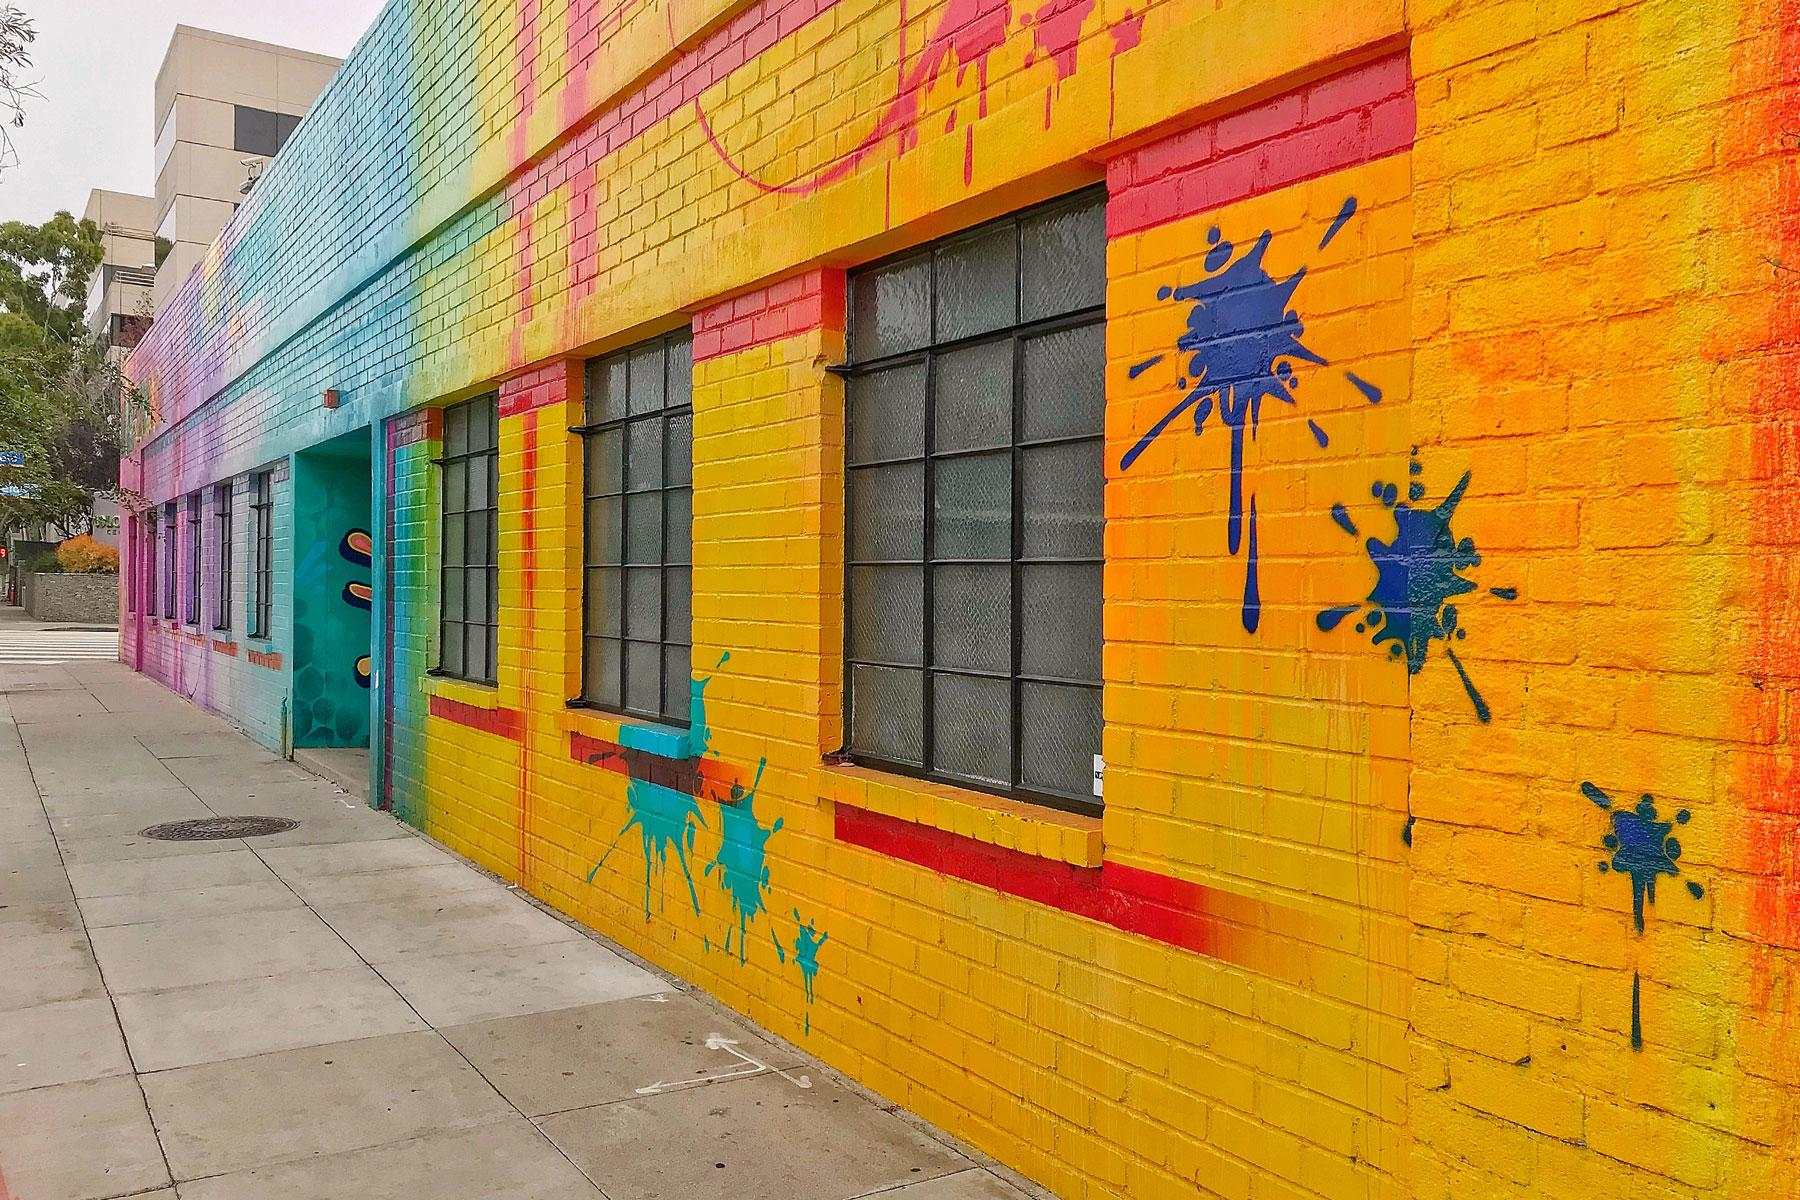 Los Angeles\' 12 Most Instagram-Worthy Walls – Fodors Travel Guide